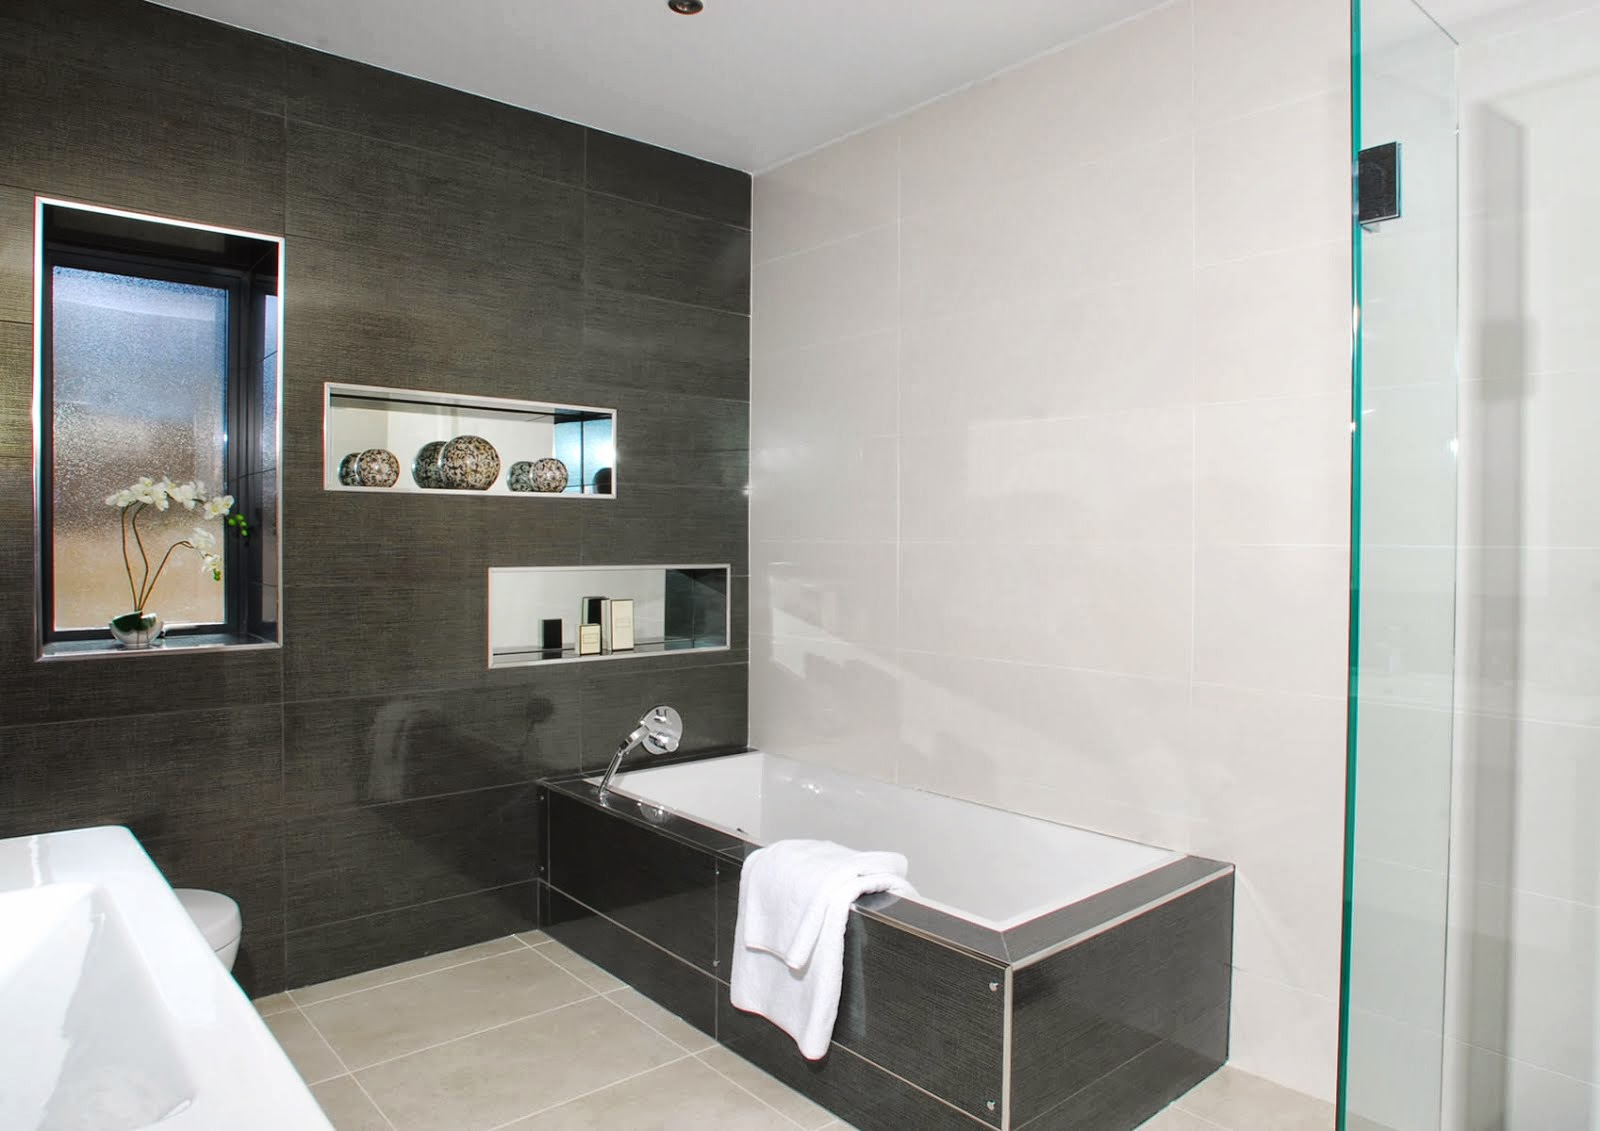 Bathroom design ideas uk for Design my bathroom